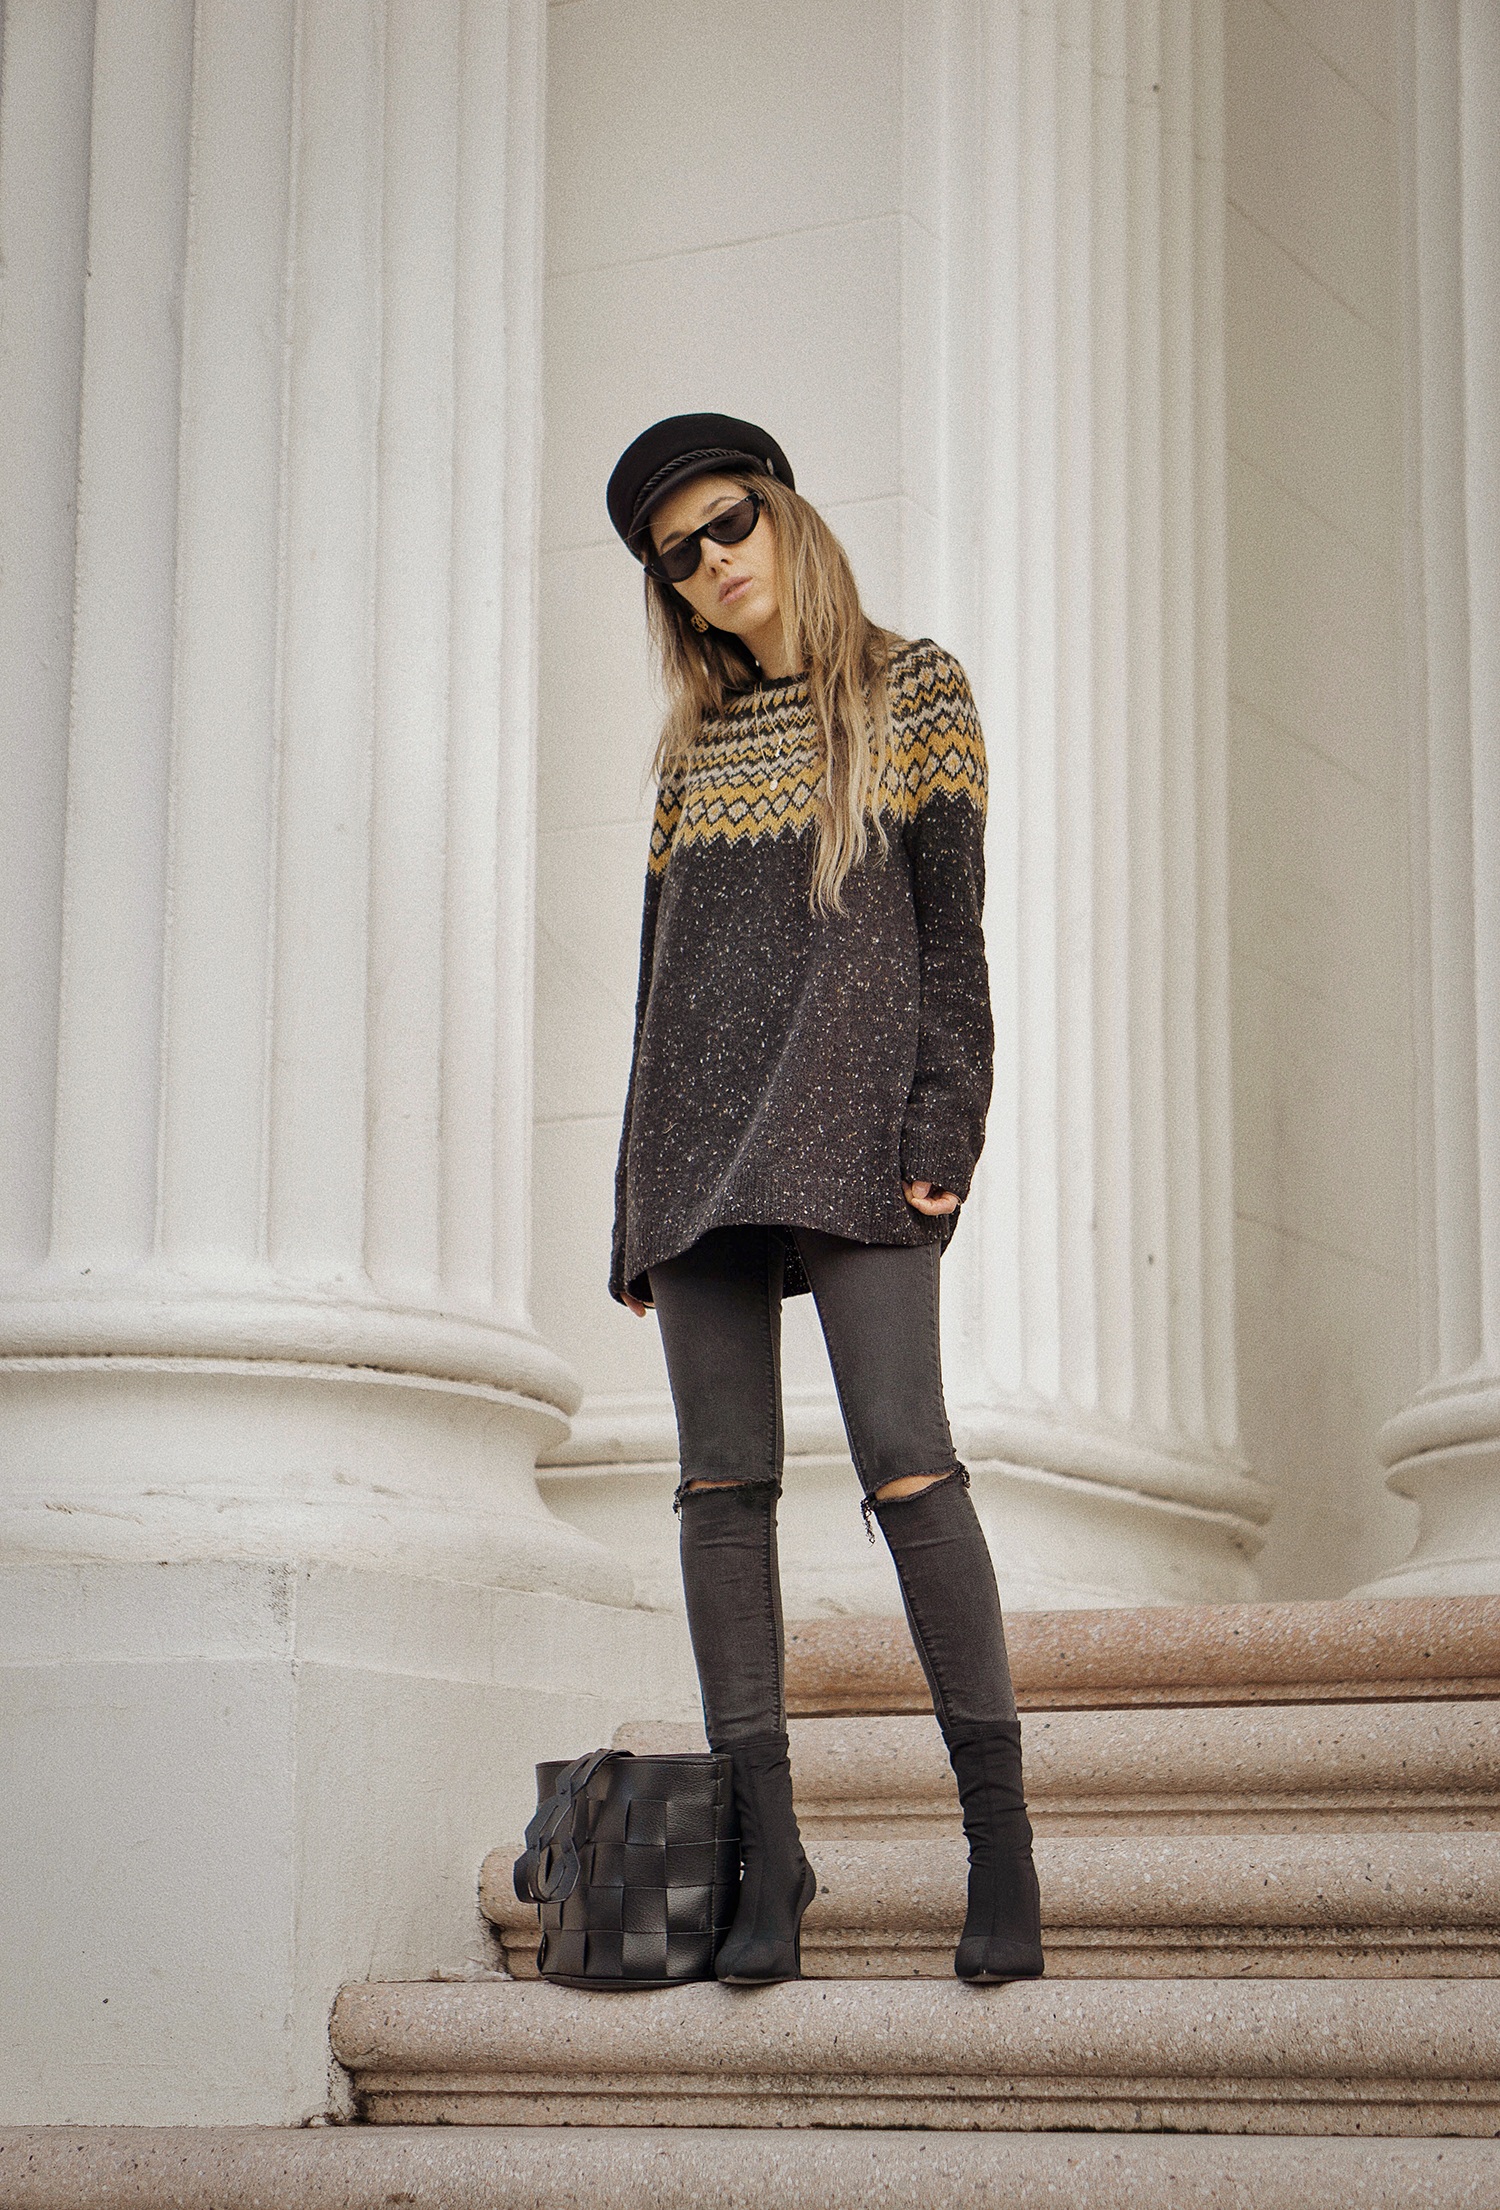 handmade_lopapeysa_intoclothing_jacquard_sweater_streetstyle_thewhiteocean_lenajuice_08